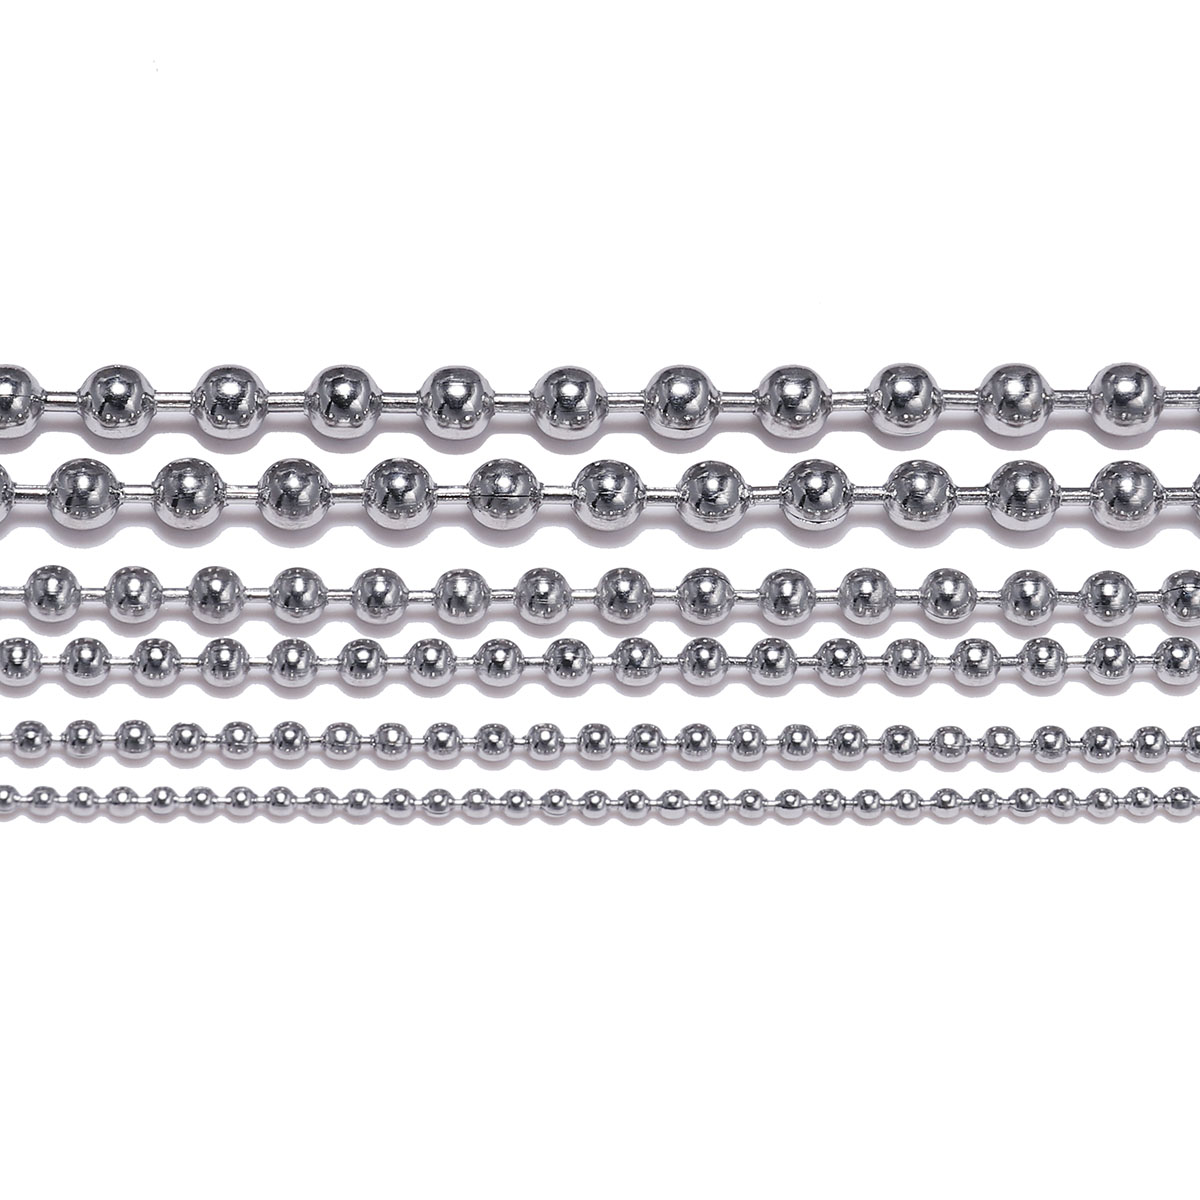 32 Feet Stainless Steel Ball Chains with 50 Pcs Matching Connectors Bead Chain Necklace 2.4mm Diameter Beaded Roller Chain Silver Fan Pull Chain Spool Extension DIY Jewelry Making Accessories